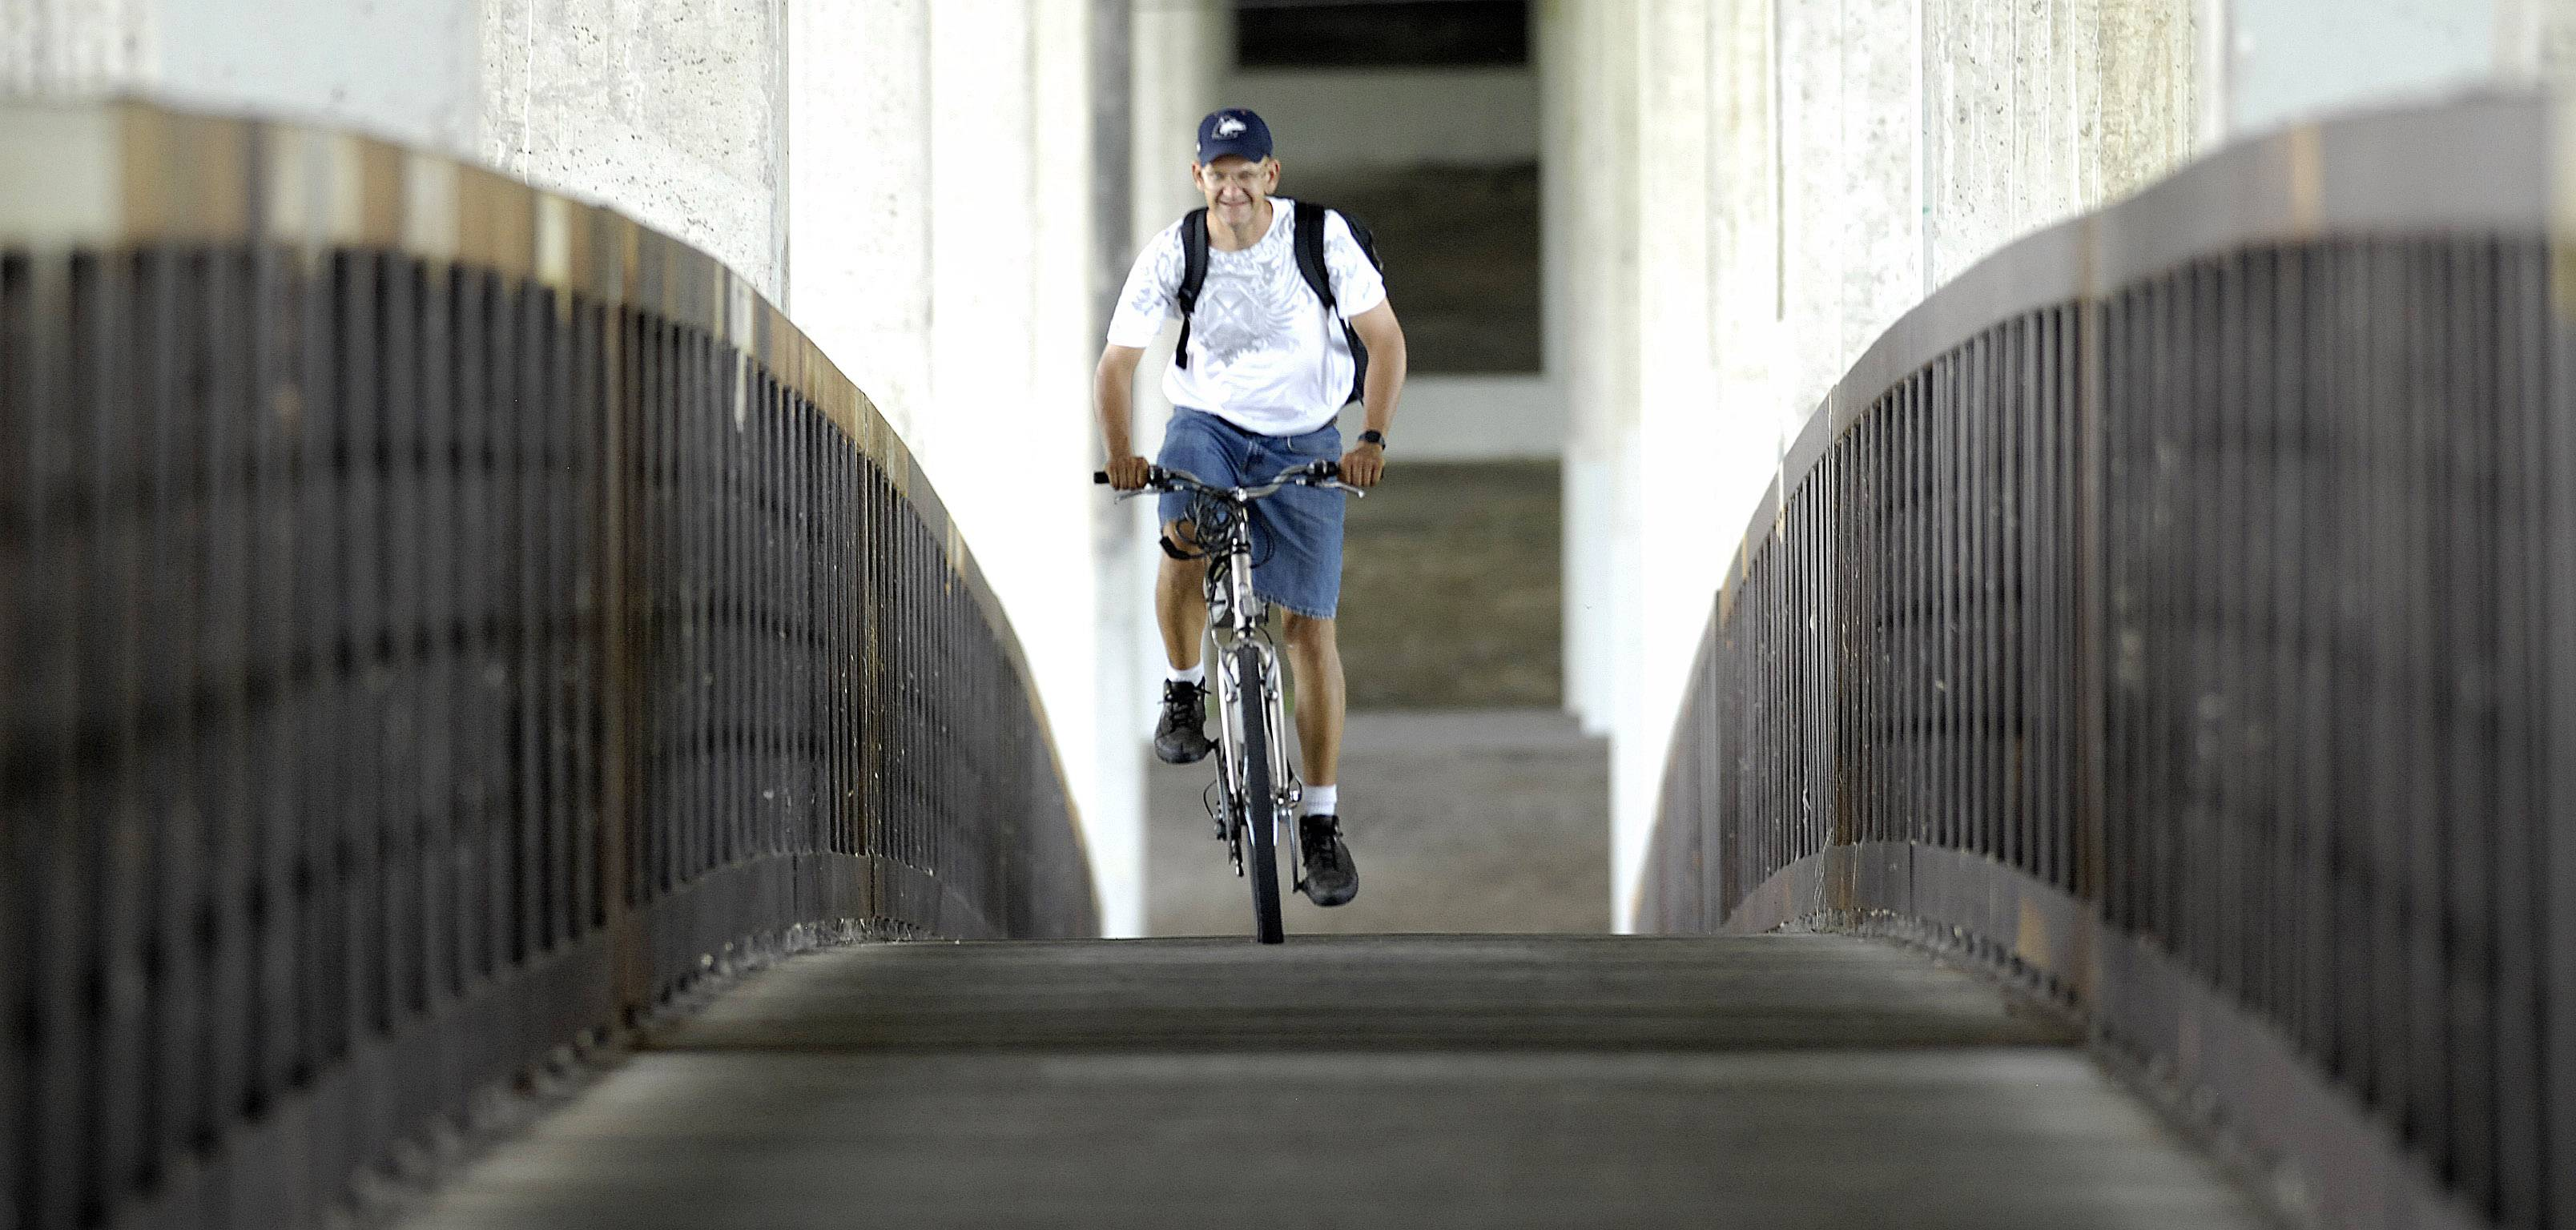 John Starks/Daily Herald, August 2011The bridge used by pedestrians and cyclists under the tollway's I-90 Fox River bridge is closing in June.